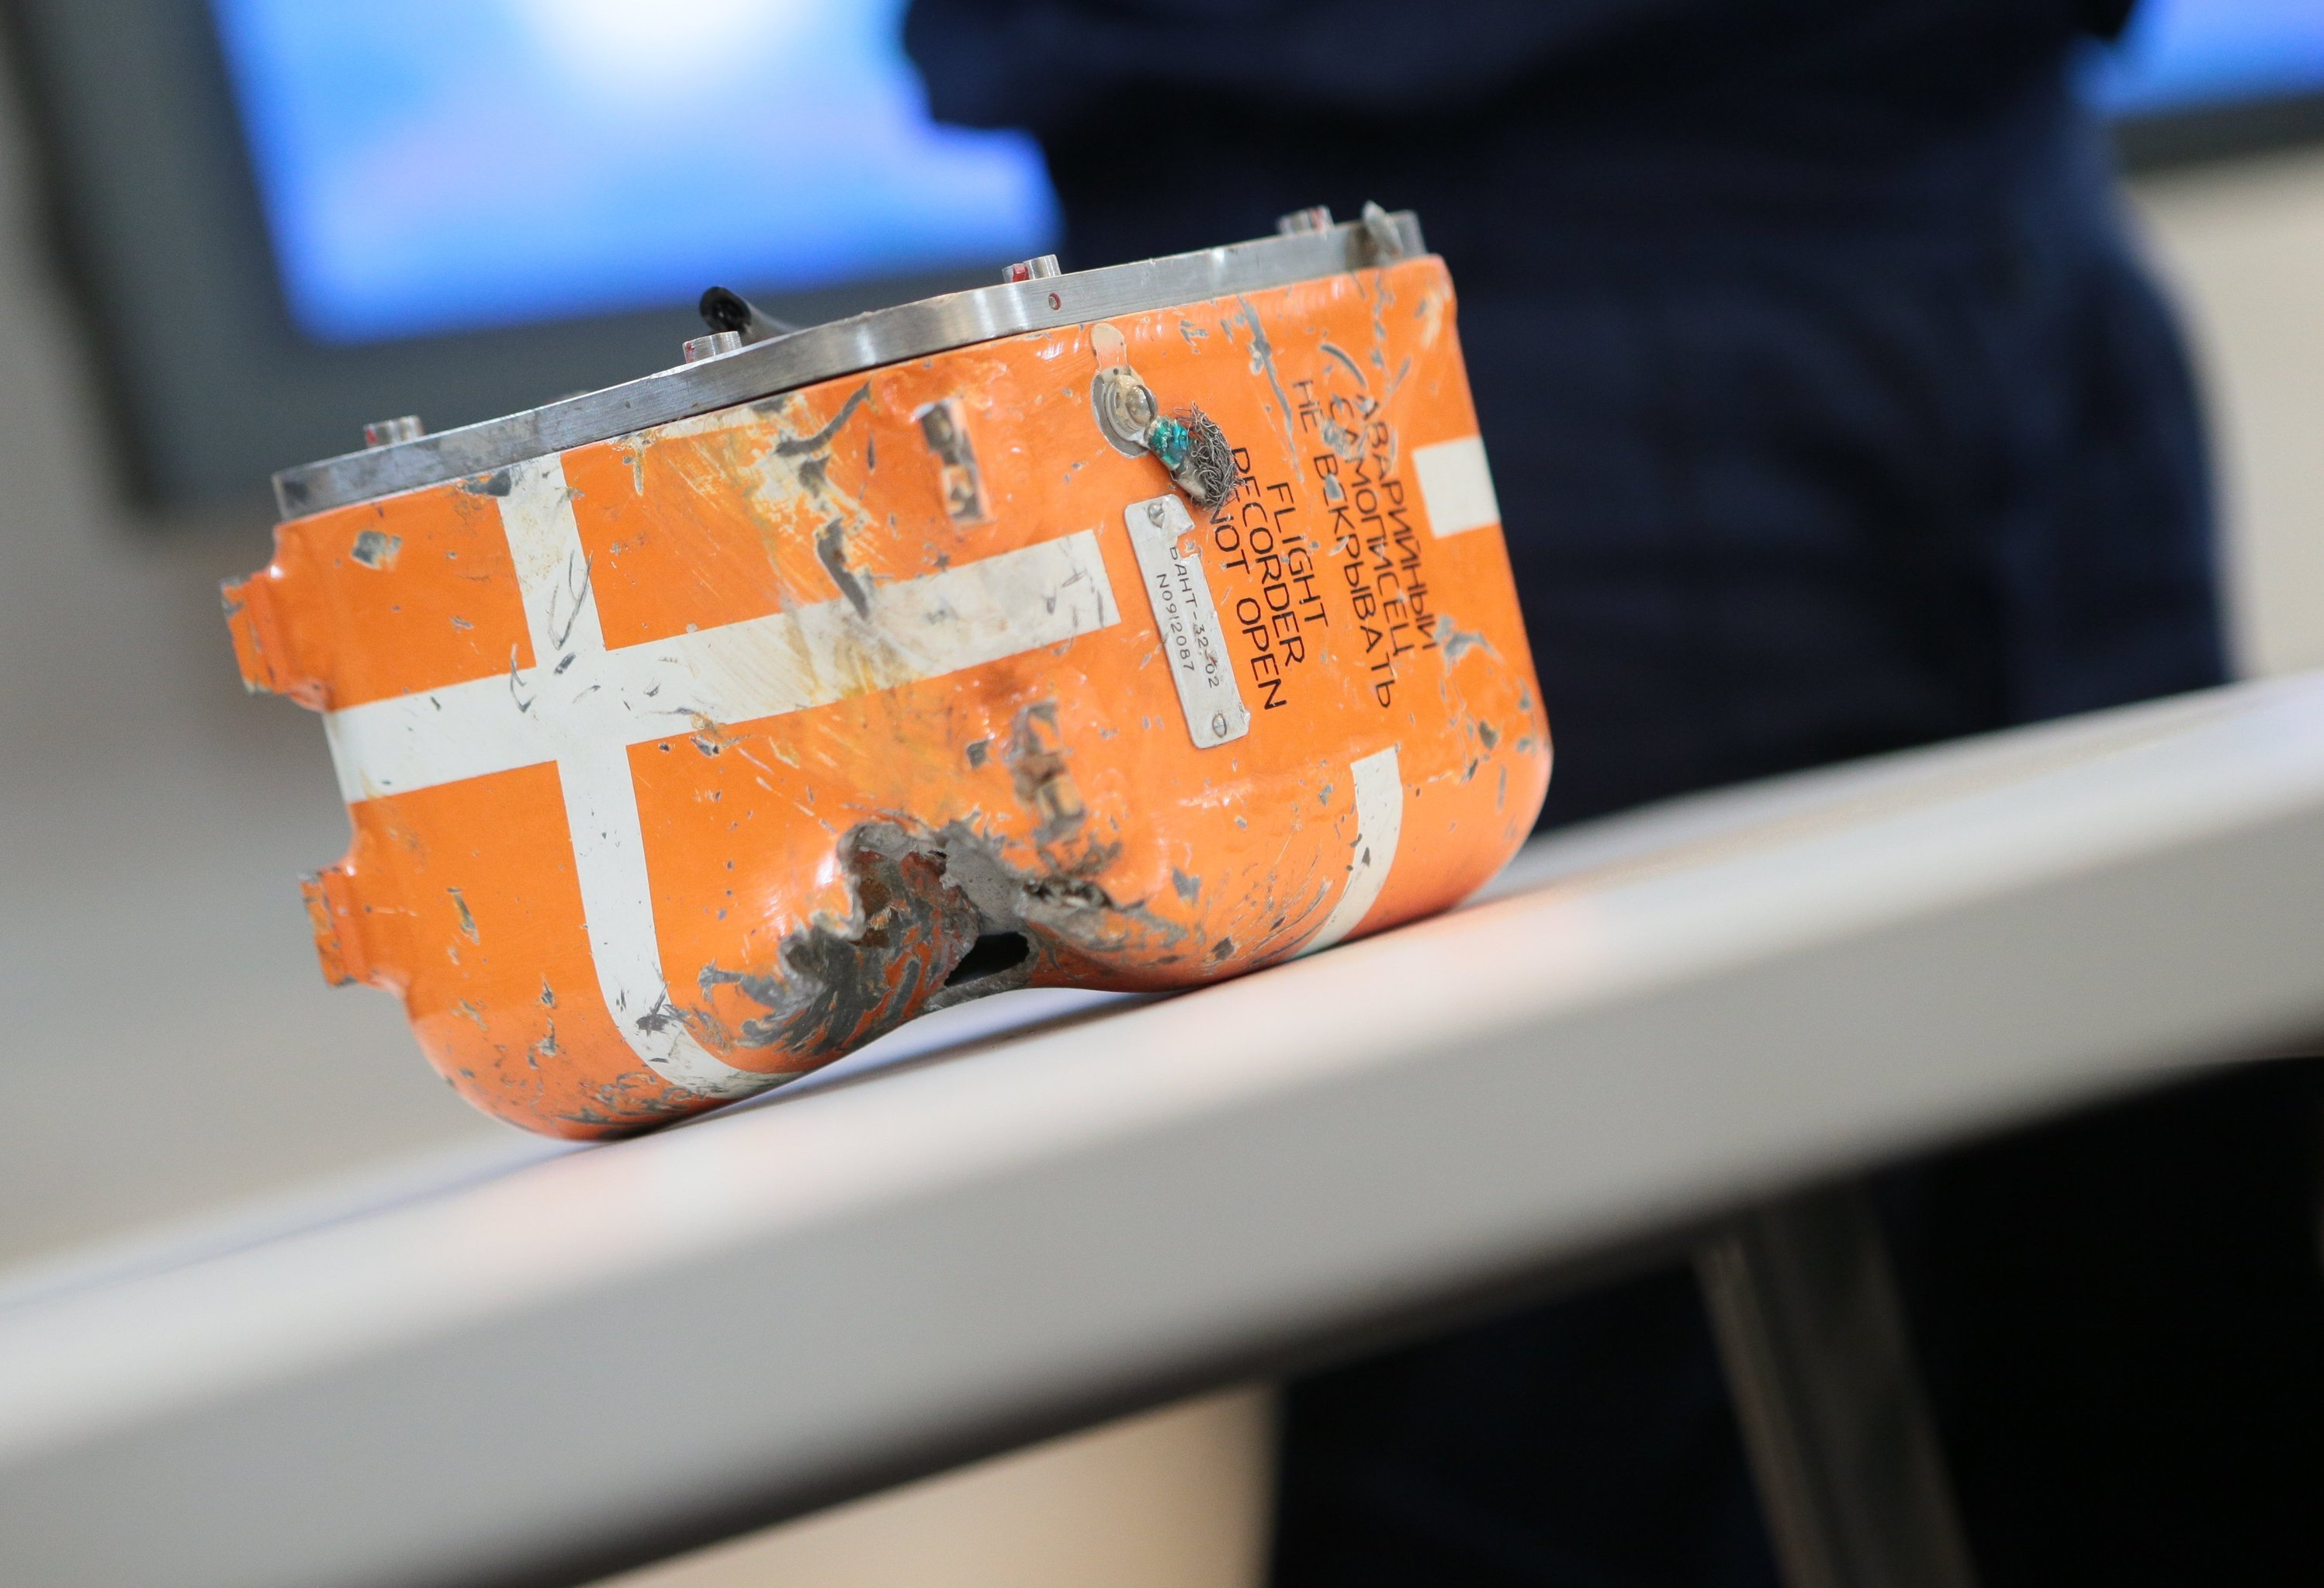 The Russian Ministry of Defense is holding a briefing Friday on the investigation regarding the Su-24 downing by Turkey and the black boxes decoding.